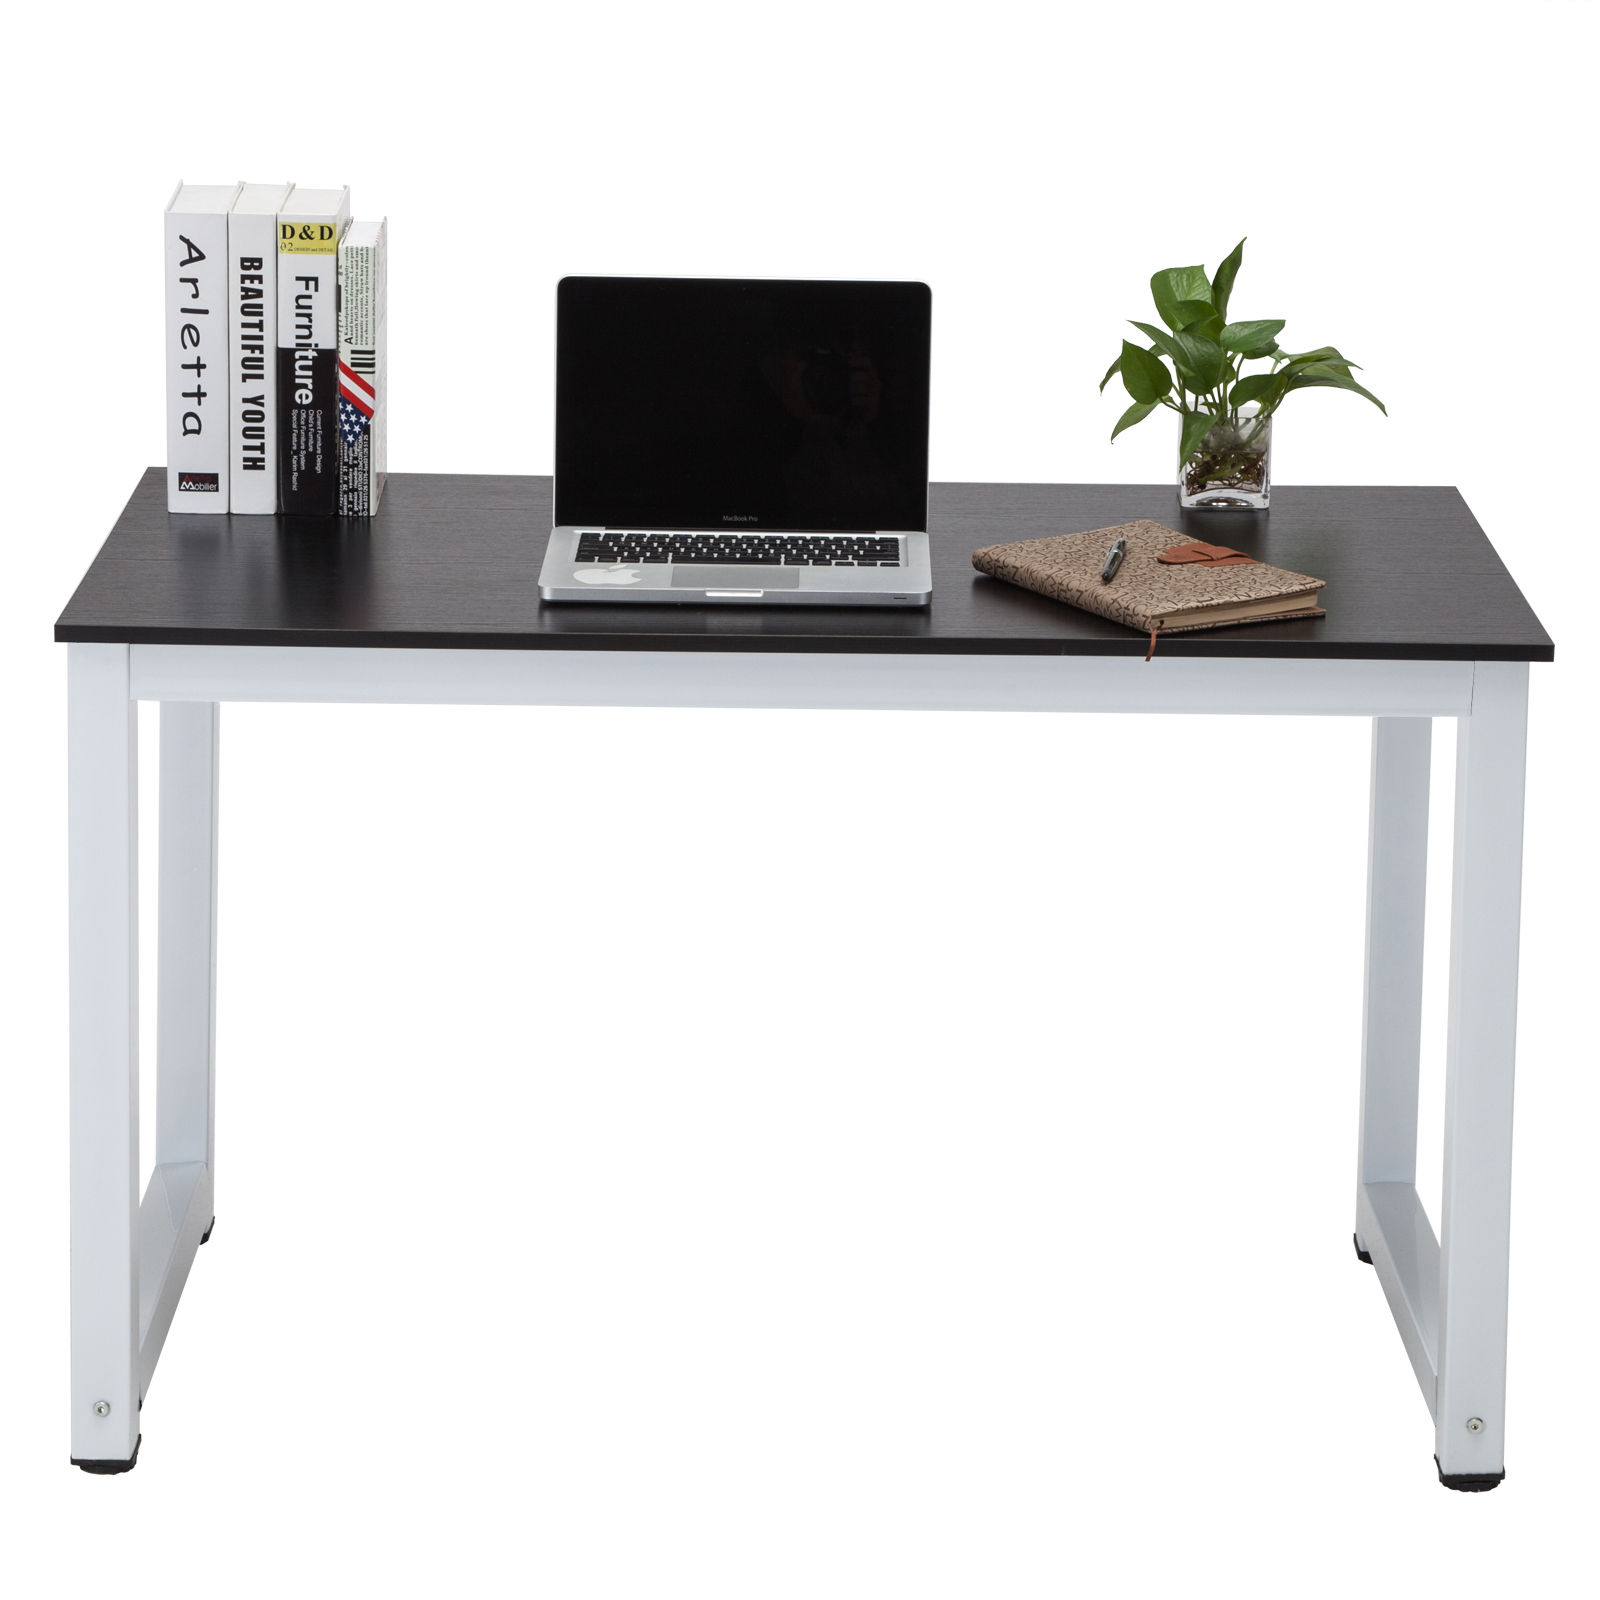 chair desks desk study prime small for ingenuity top and white home office student bedroom